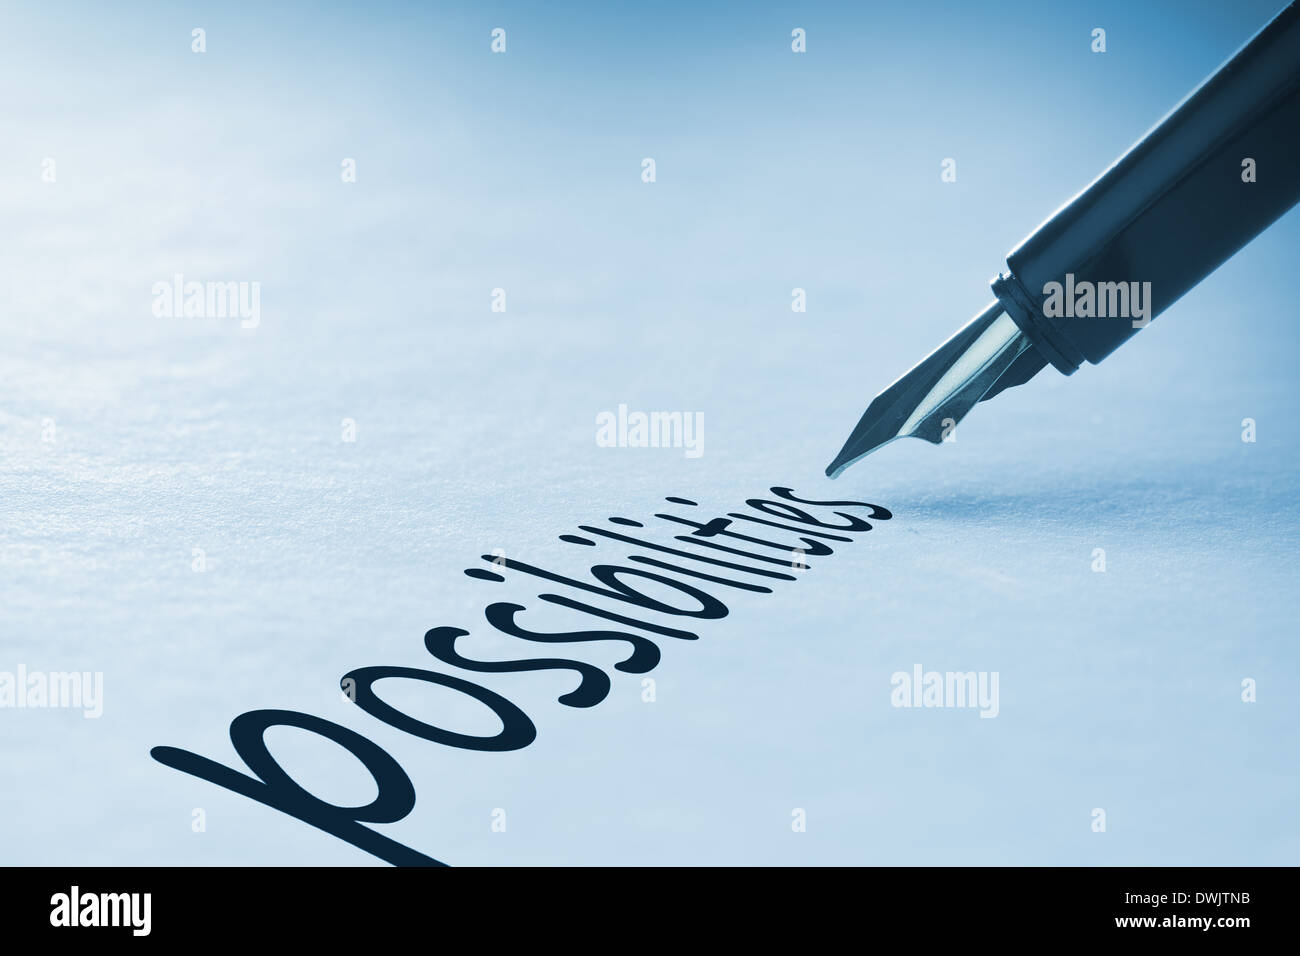 Fountain pen writing Possibilities - Stock Image